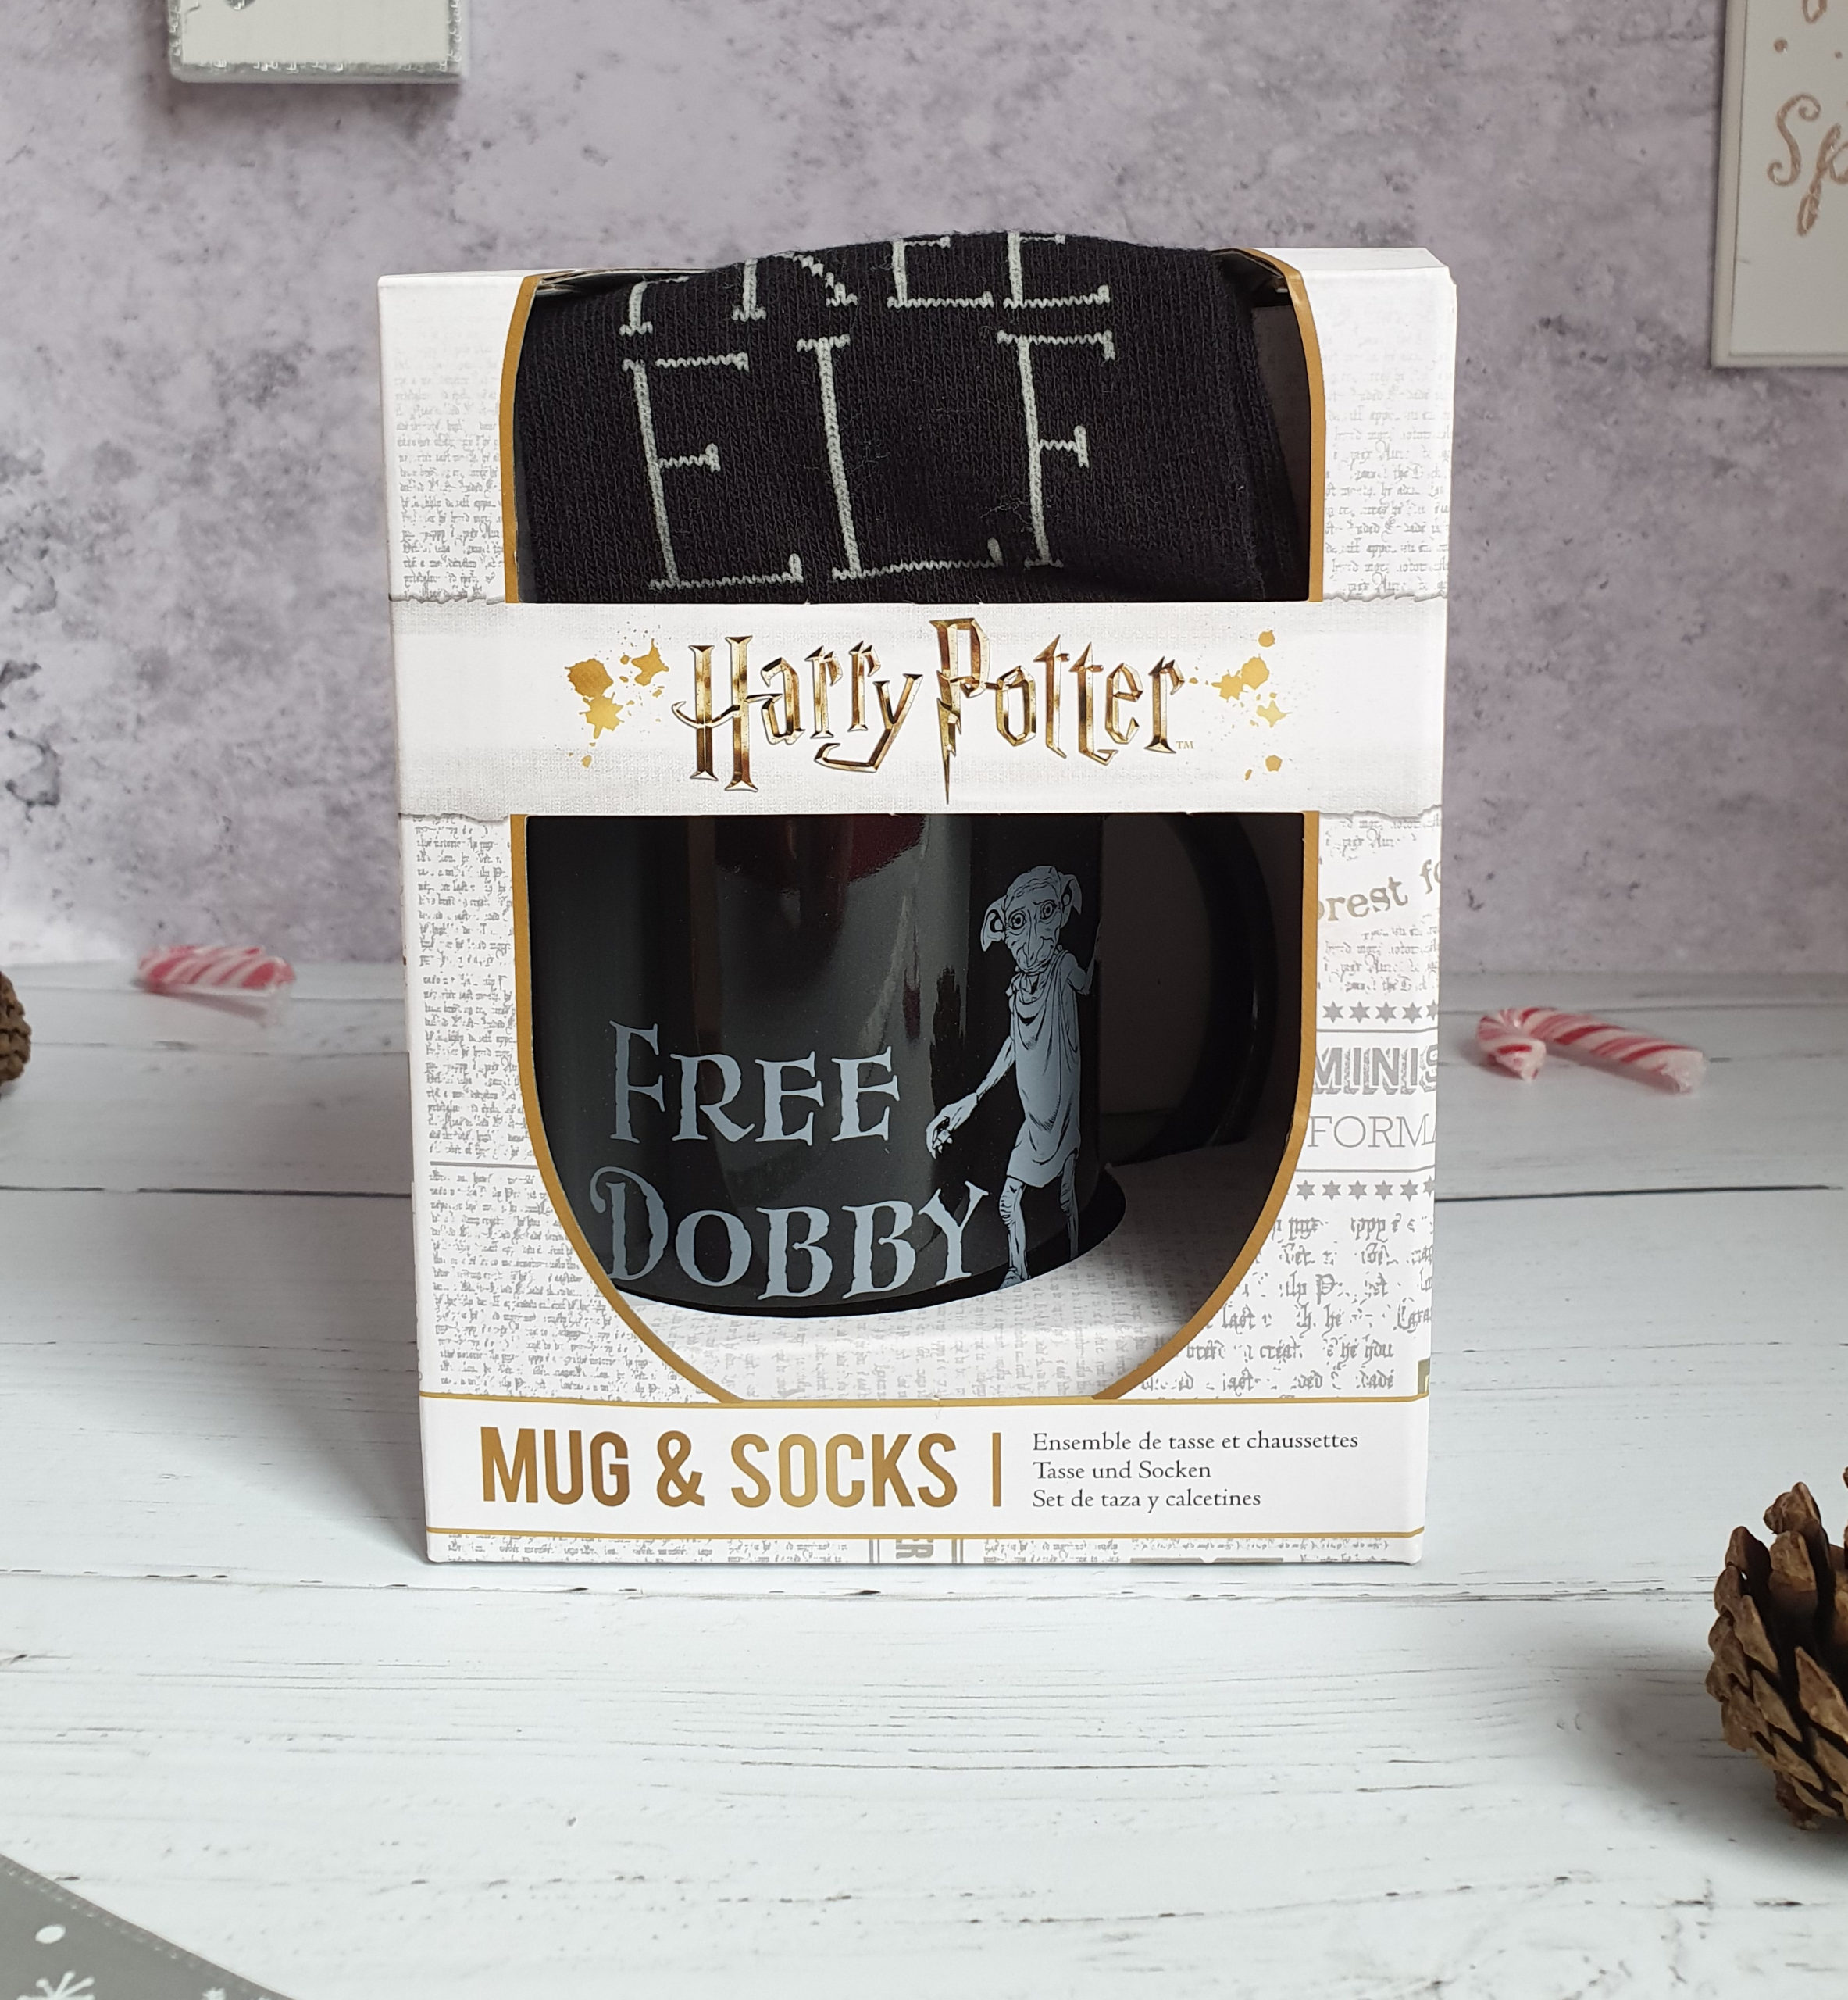 Dobby mug and socks